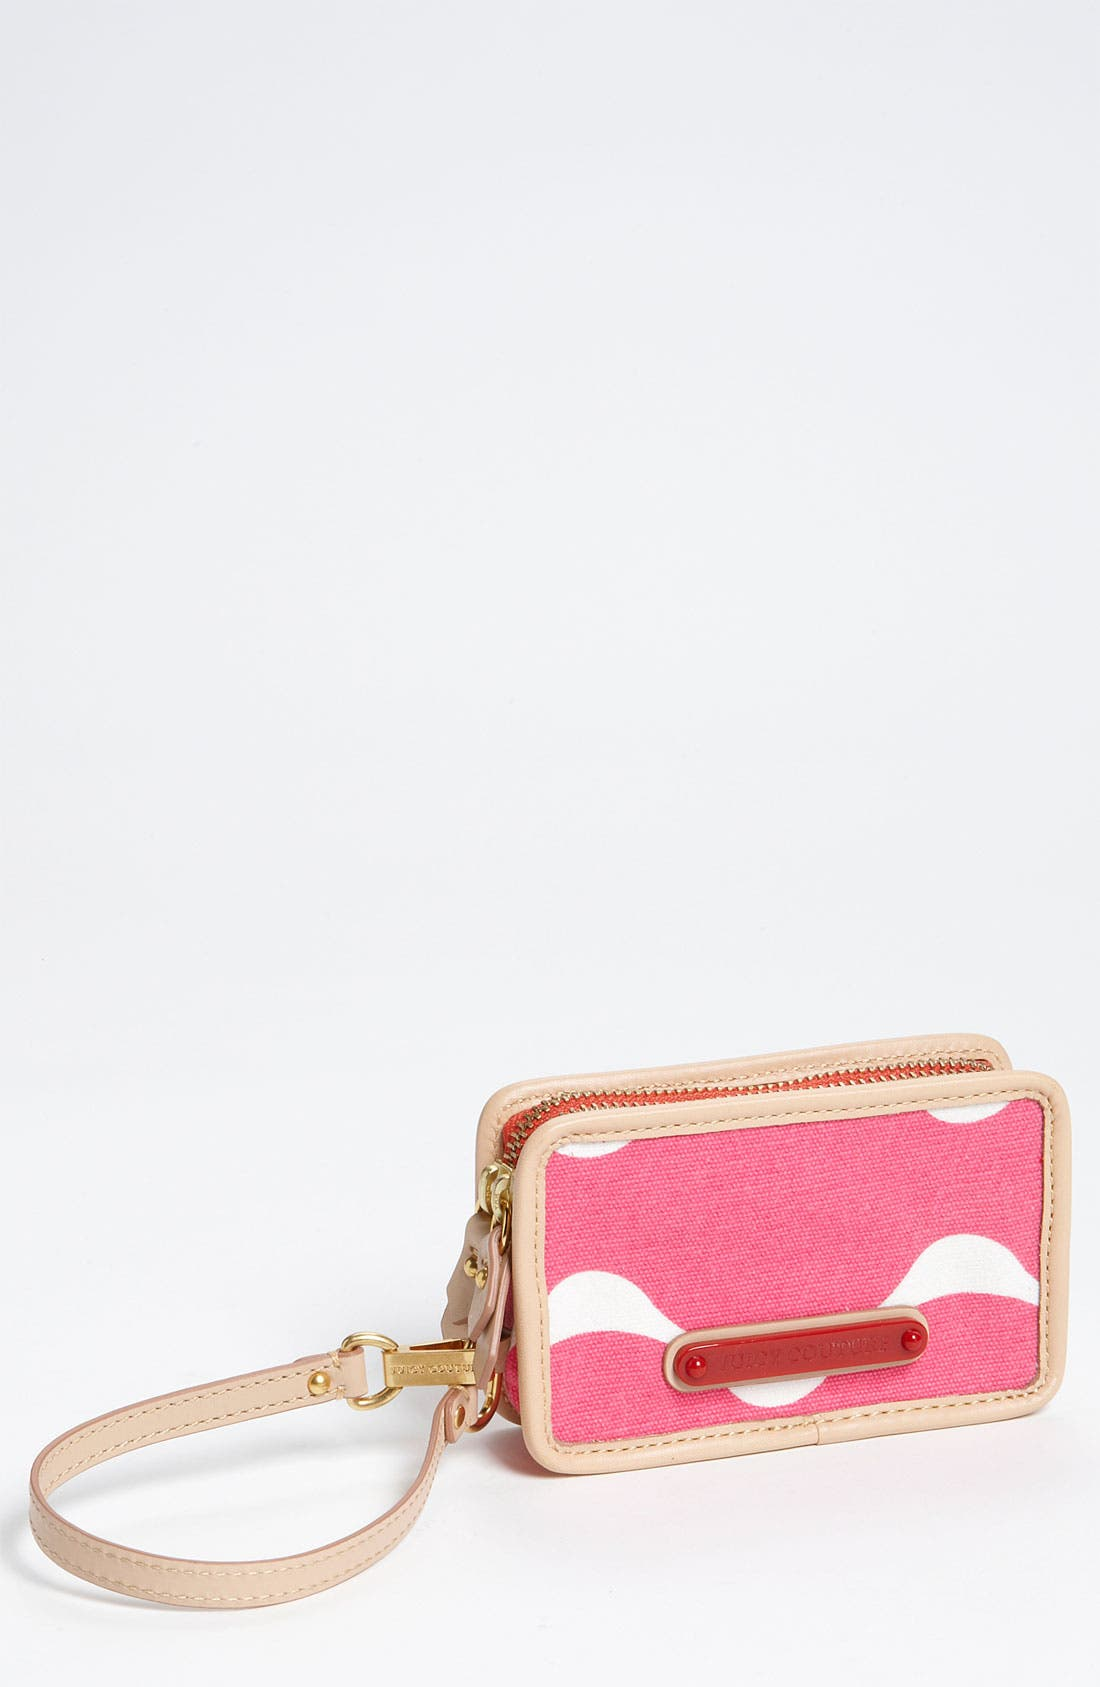 Alternate Image 1 Selected - Juicy Couture 'Crazy for Couture' Canvas Phone Wristlet